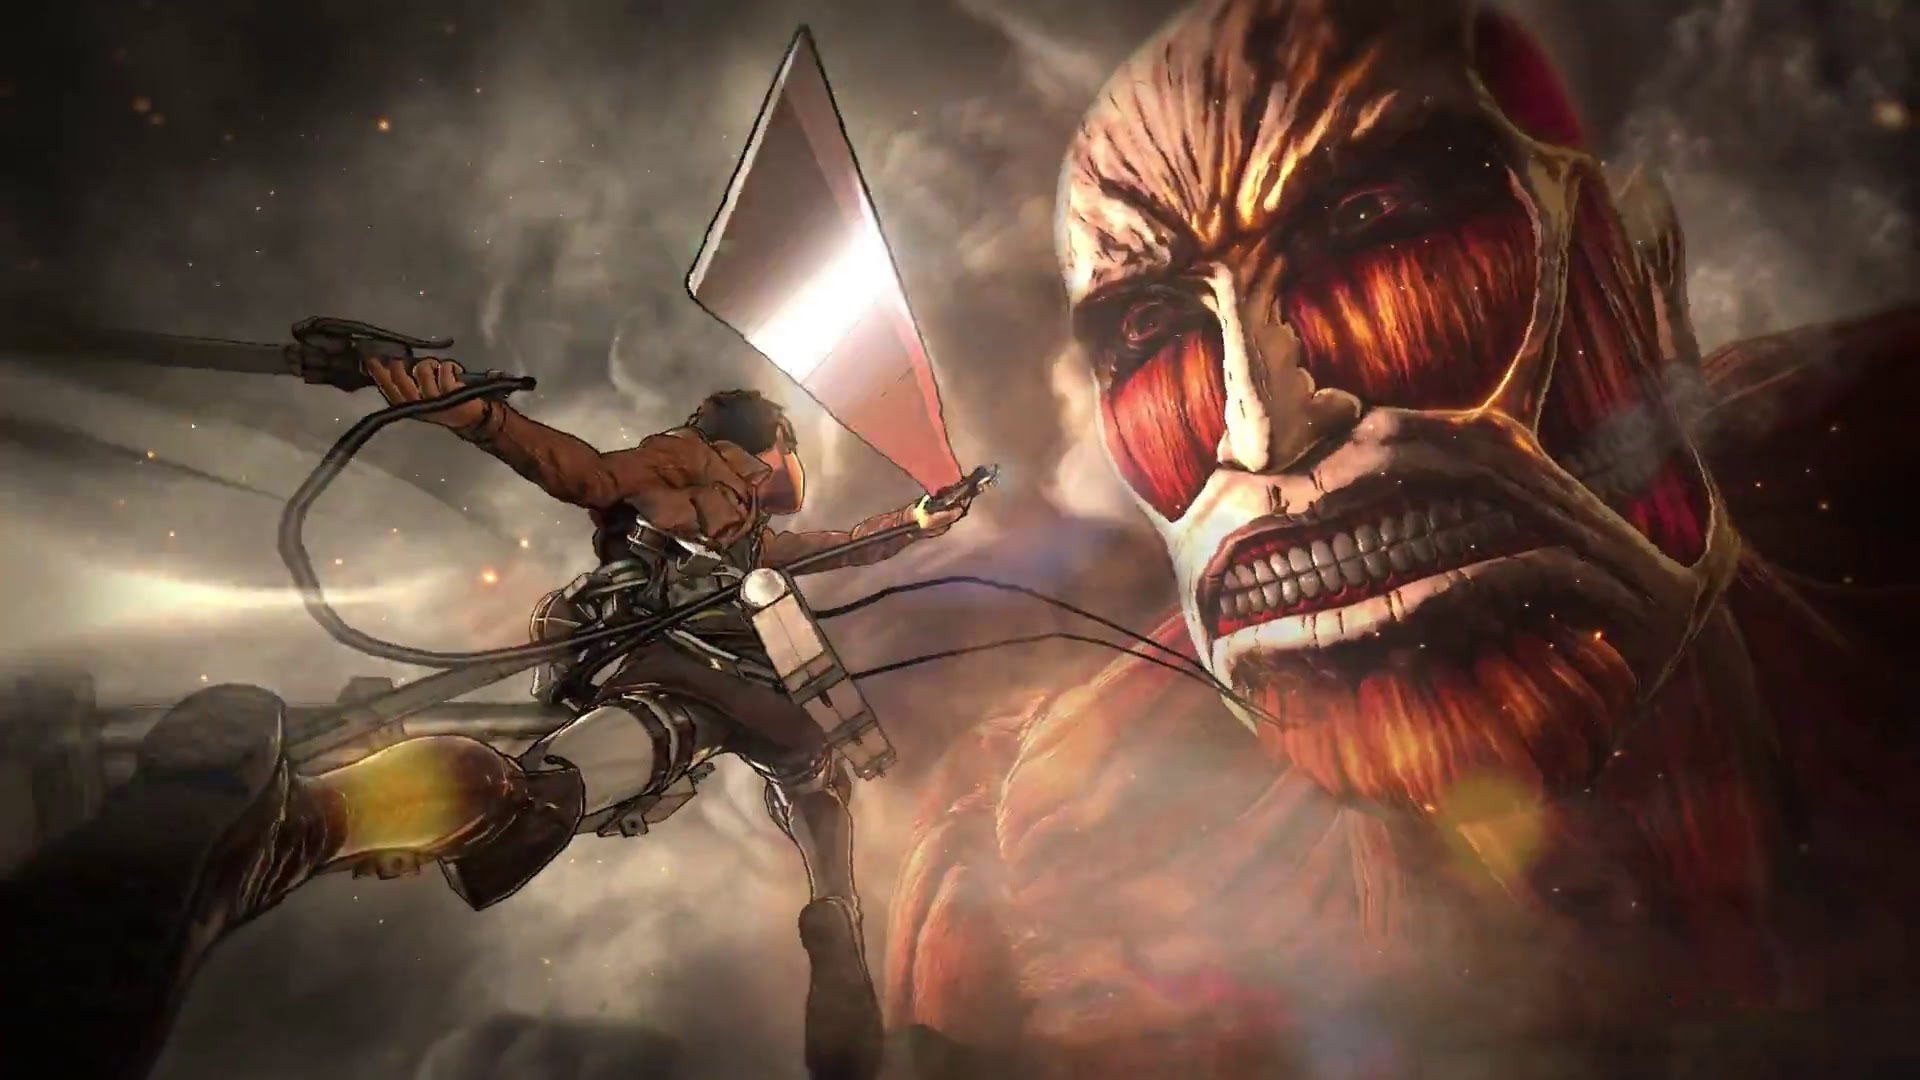 Modojo | Koei Tecmo Releases Videos Detailing the Attack on Titan Battle System